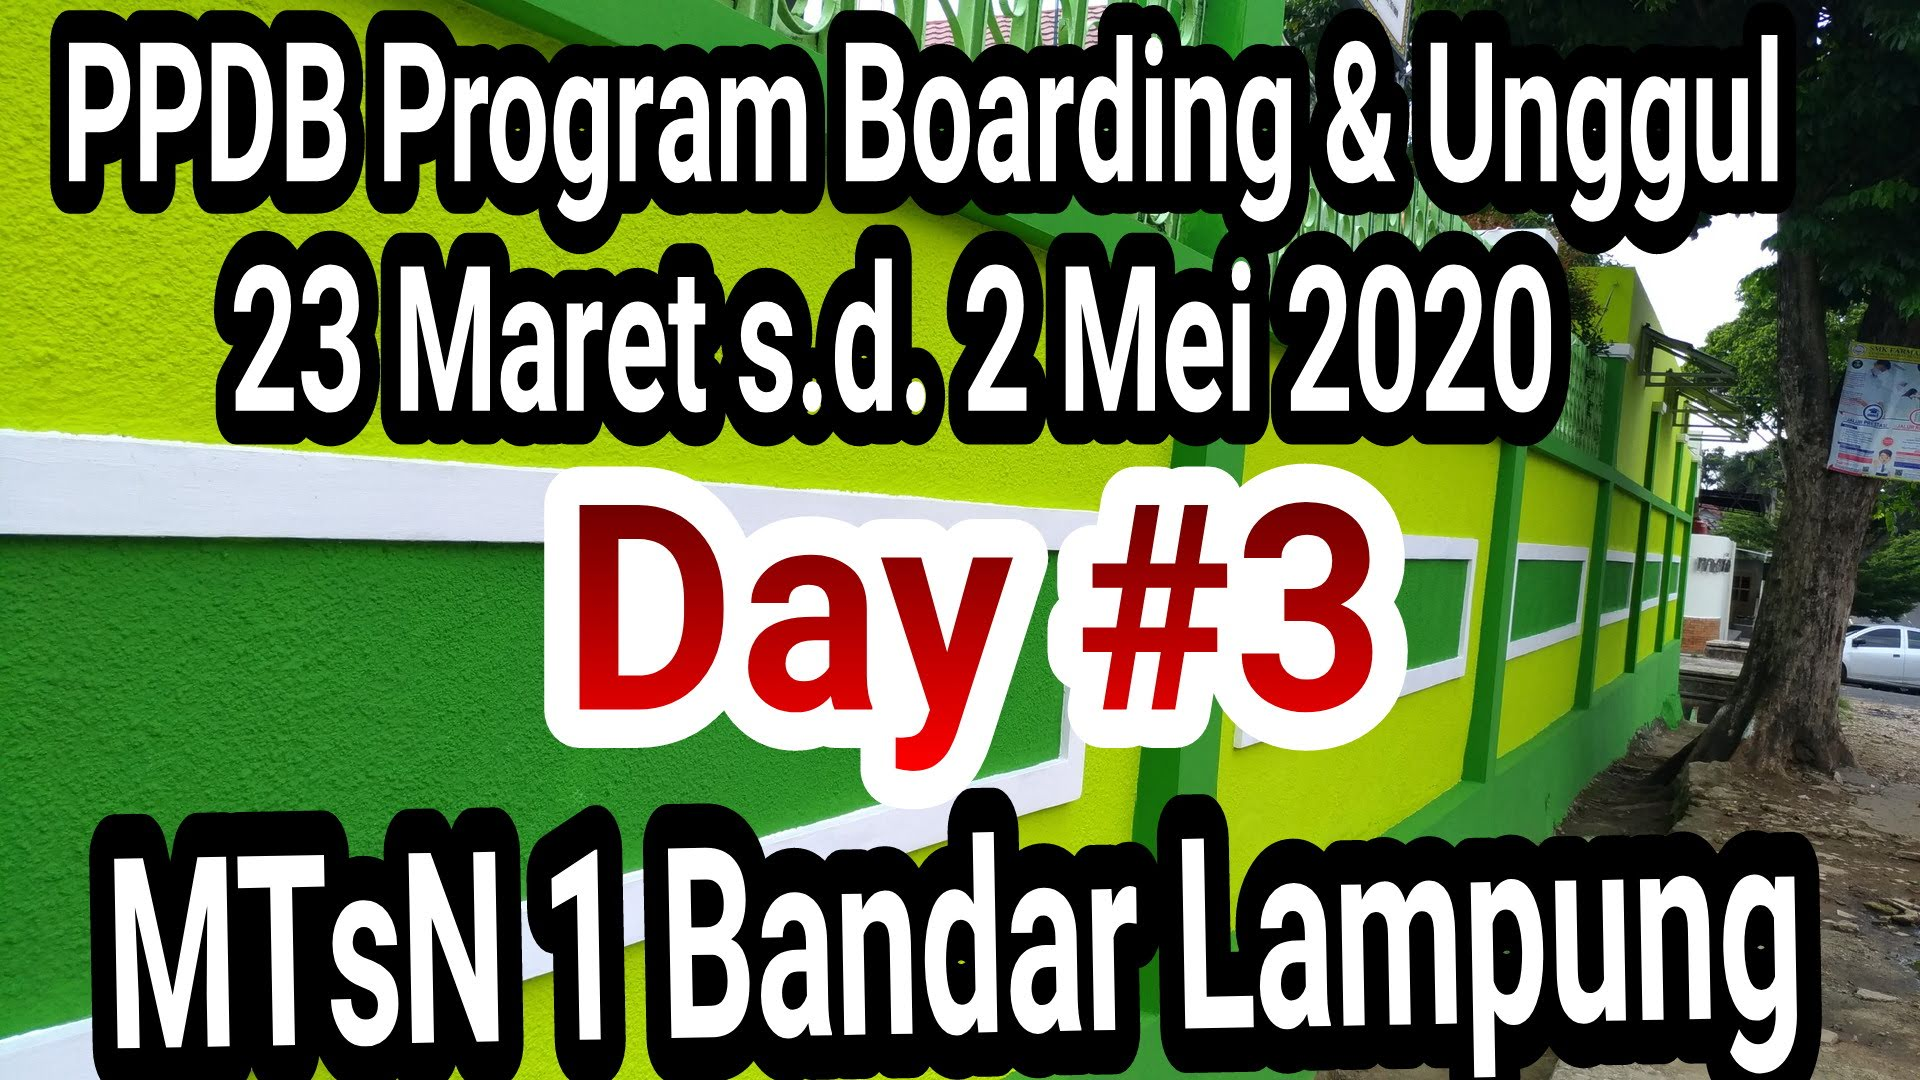 PPDB Online Program Unggul & Boarding Day #3